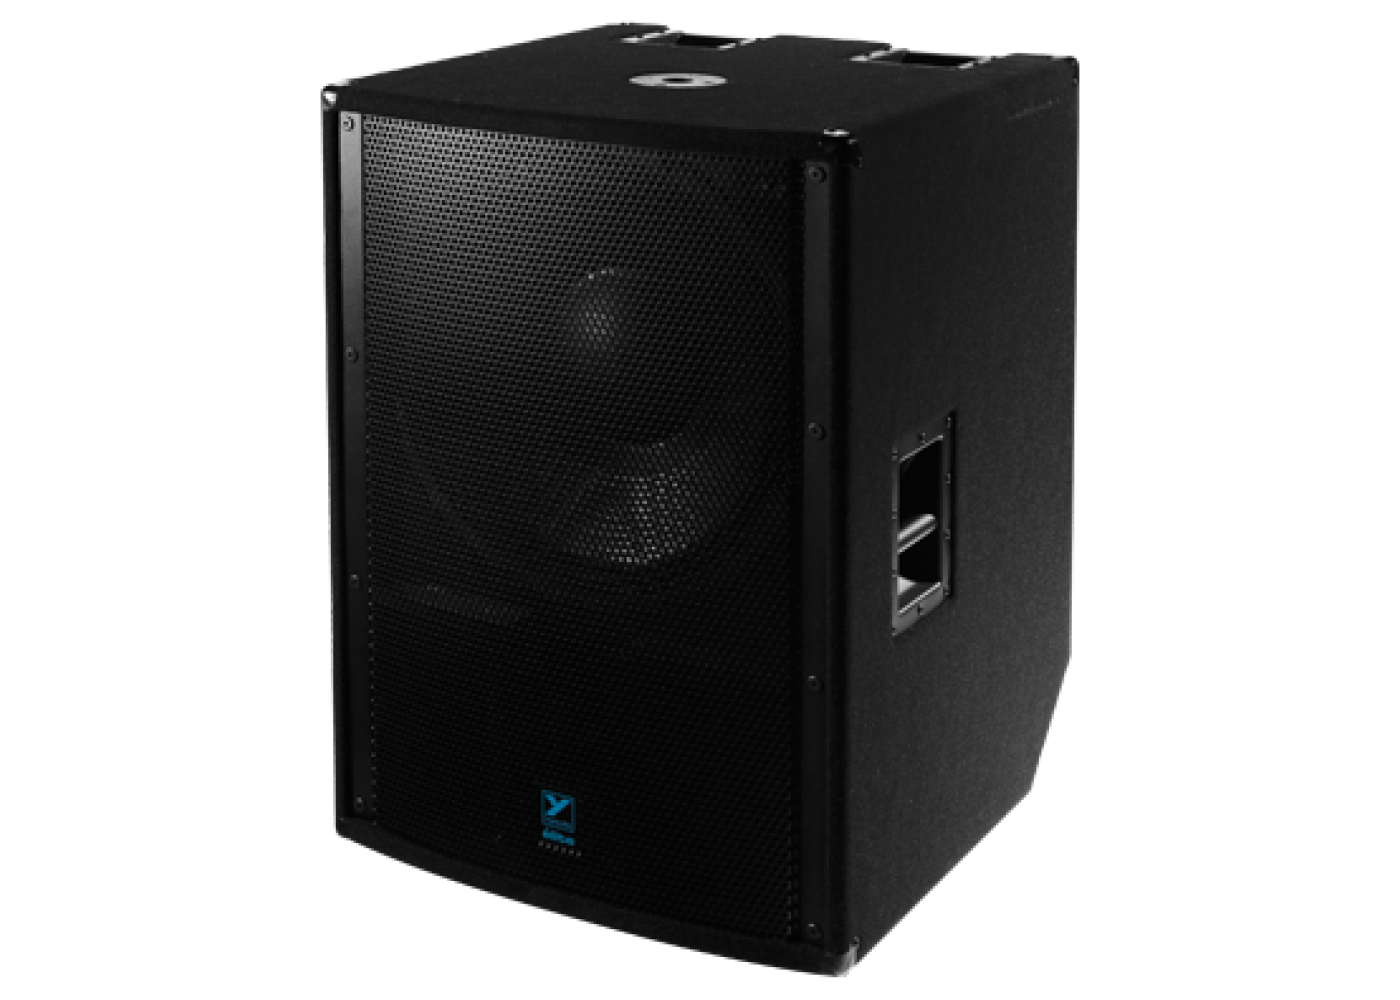 Rental  Yorkville LS2100P 2400 Watt (3600 Peak) 21 Inch Powered Subwoofer  Speaker Cabinet